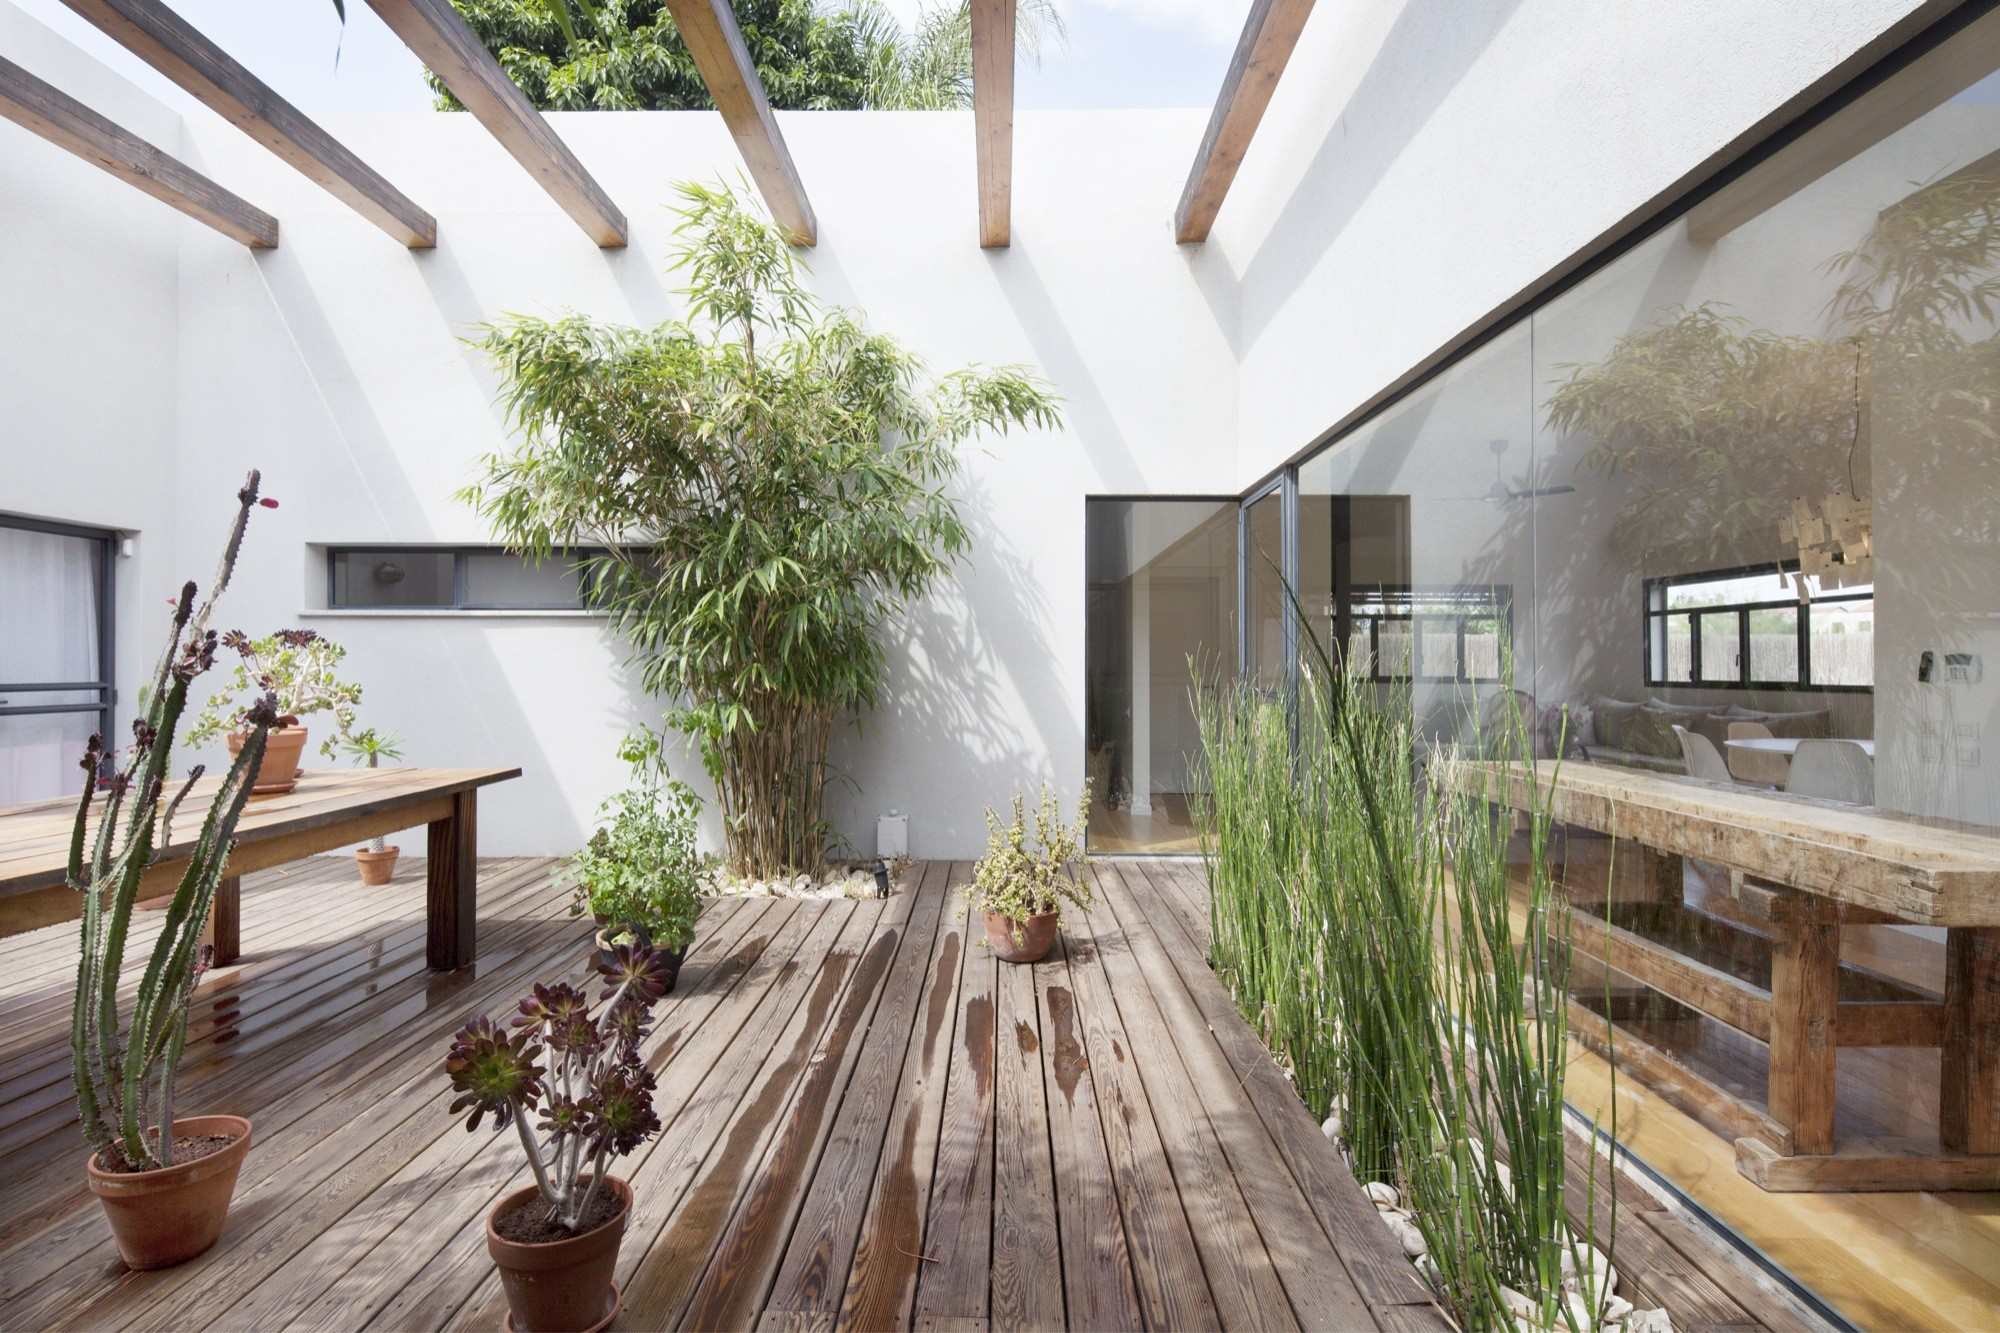 Gallery Of Fuks 34 Henkin Shavit Studio 6: what is an atrium in a house